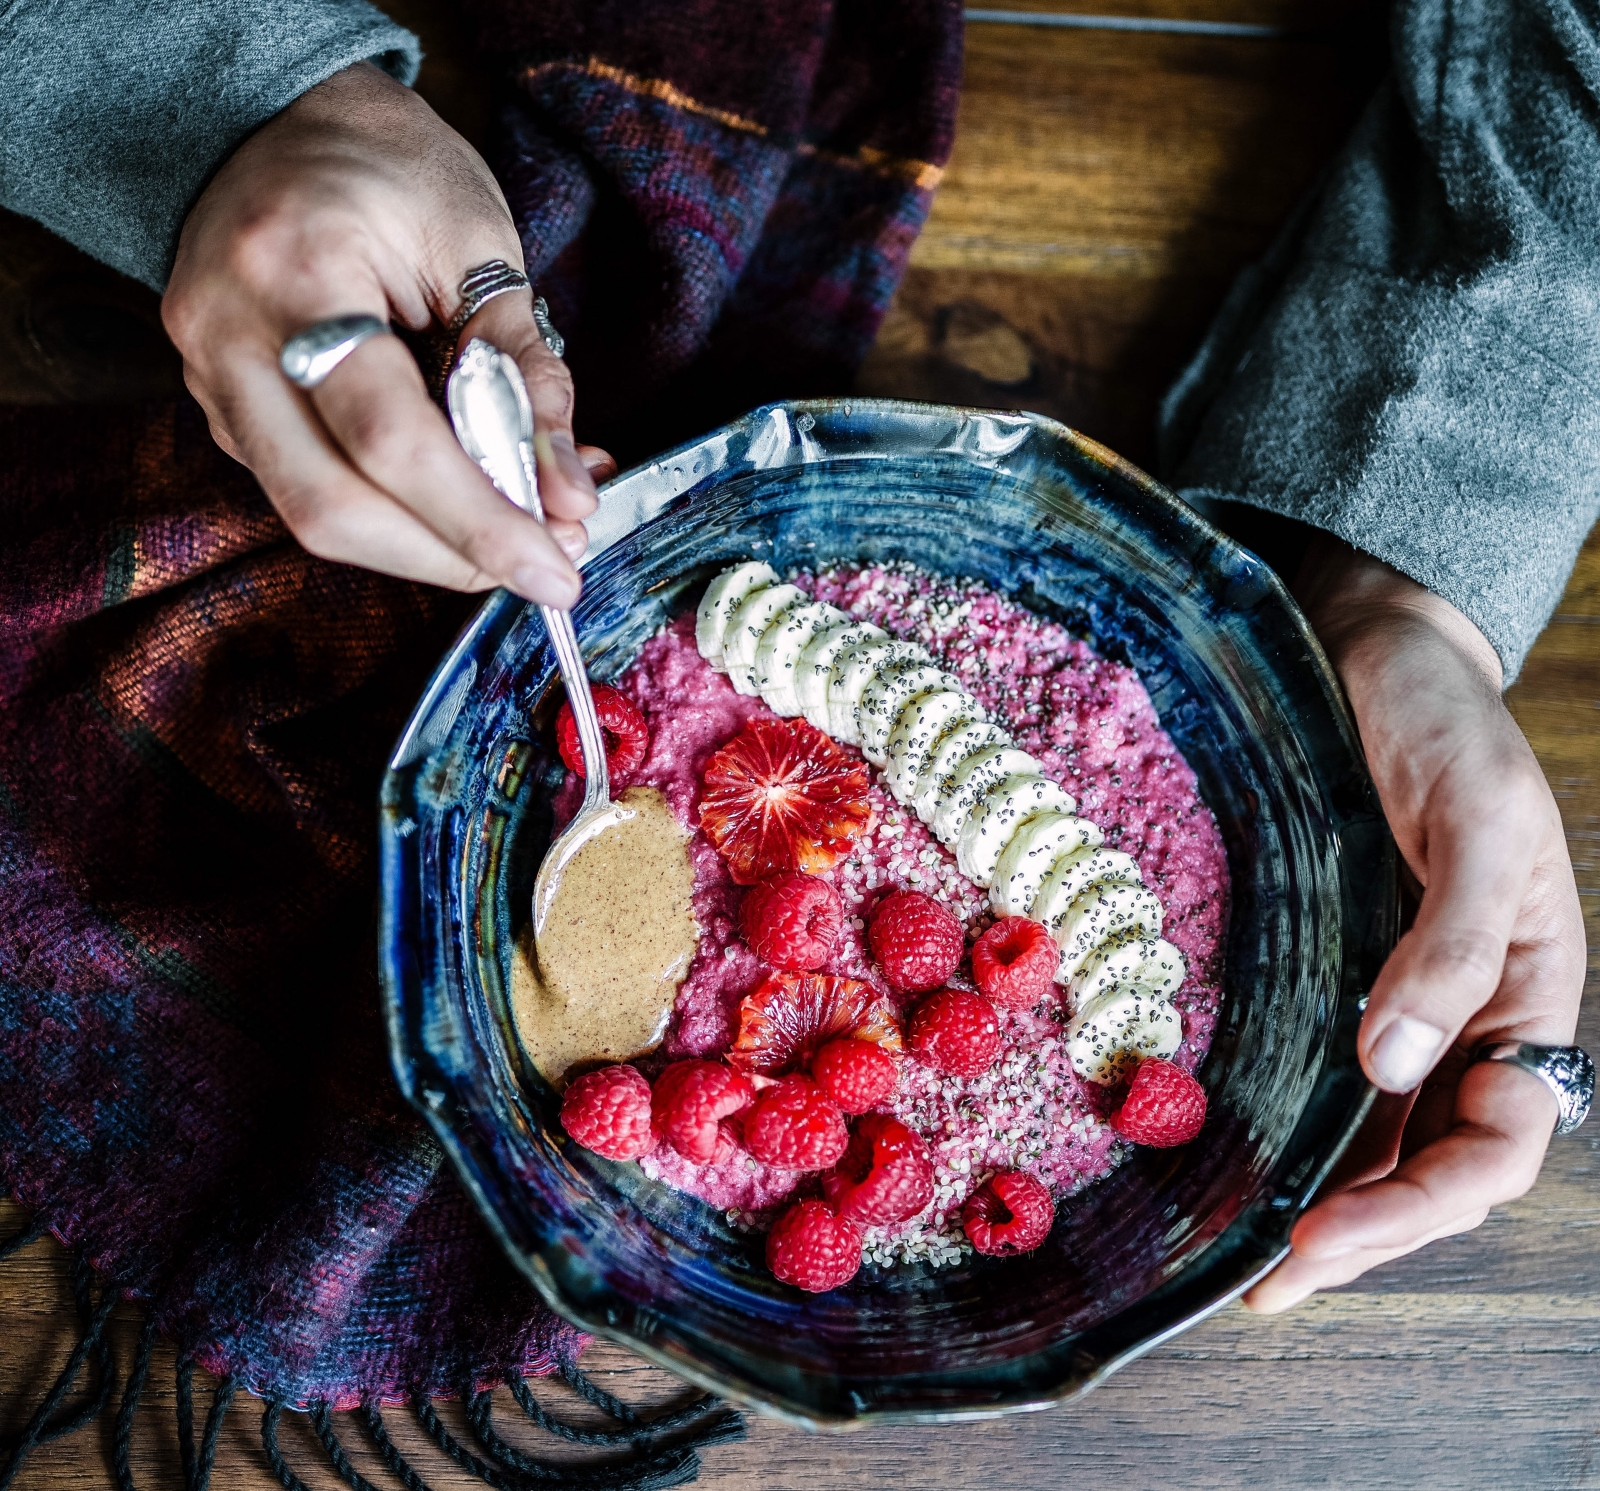 Pink porridge with bananas and raspberries